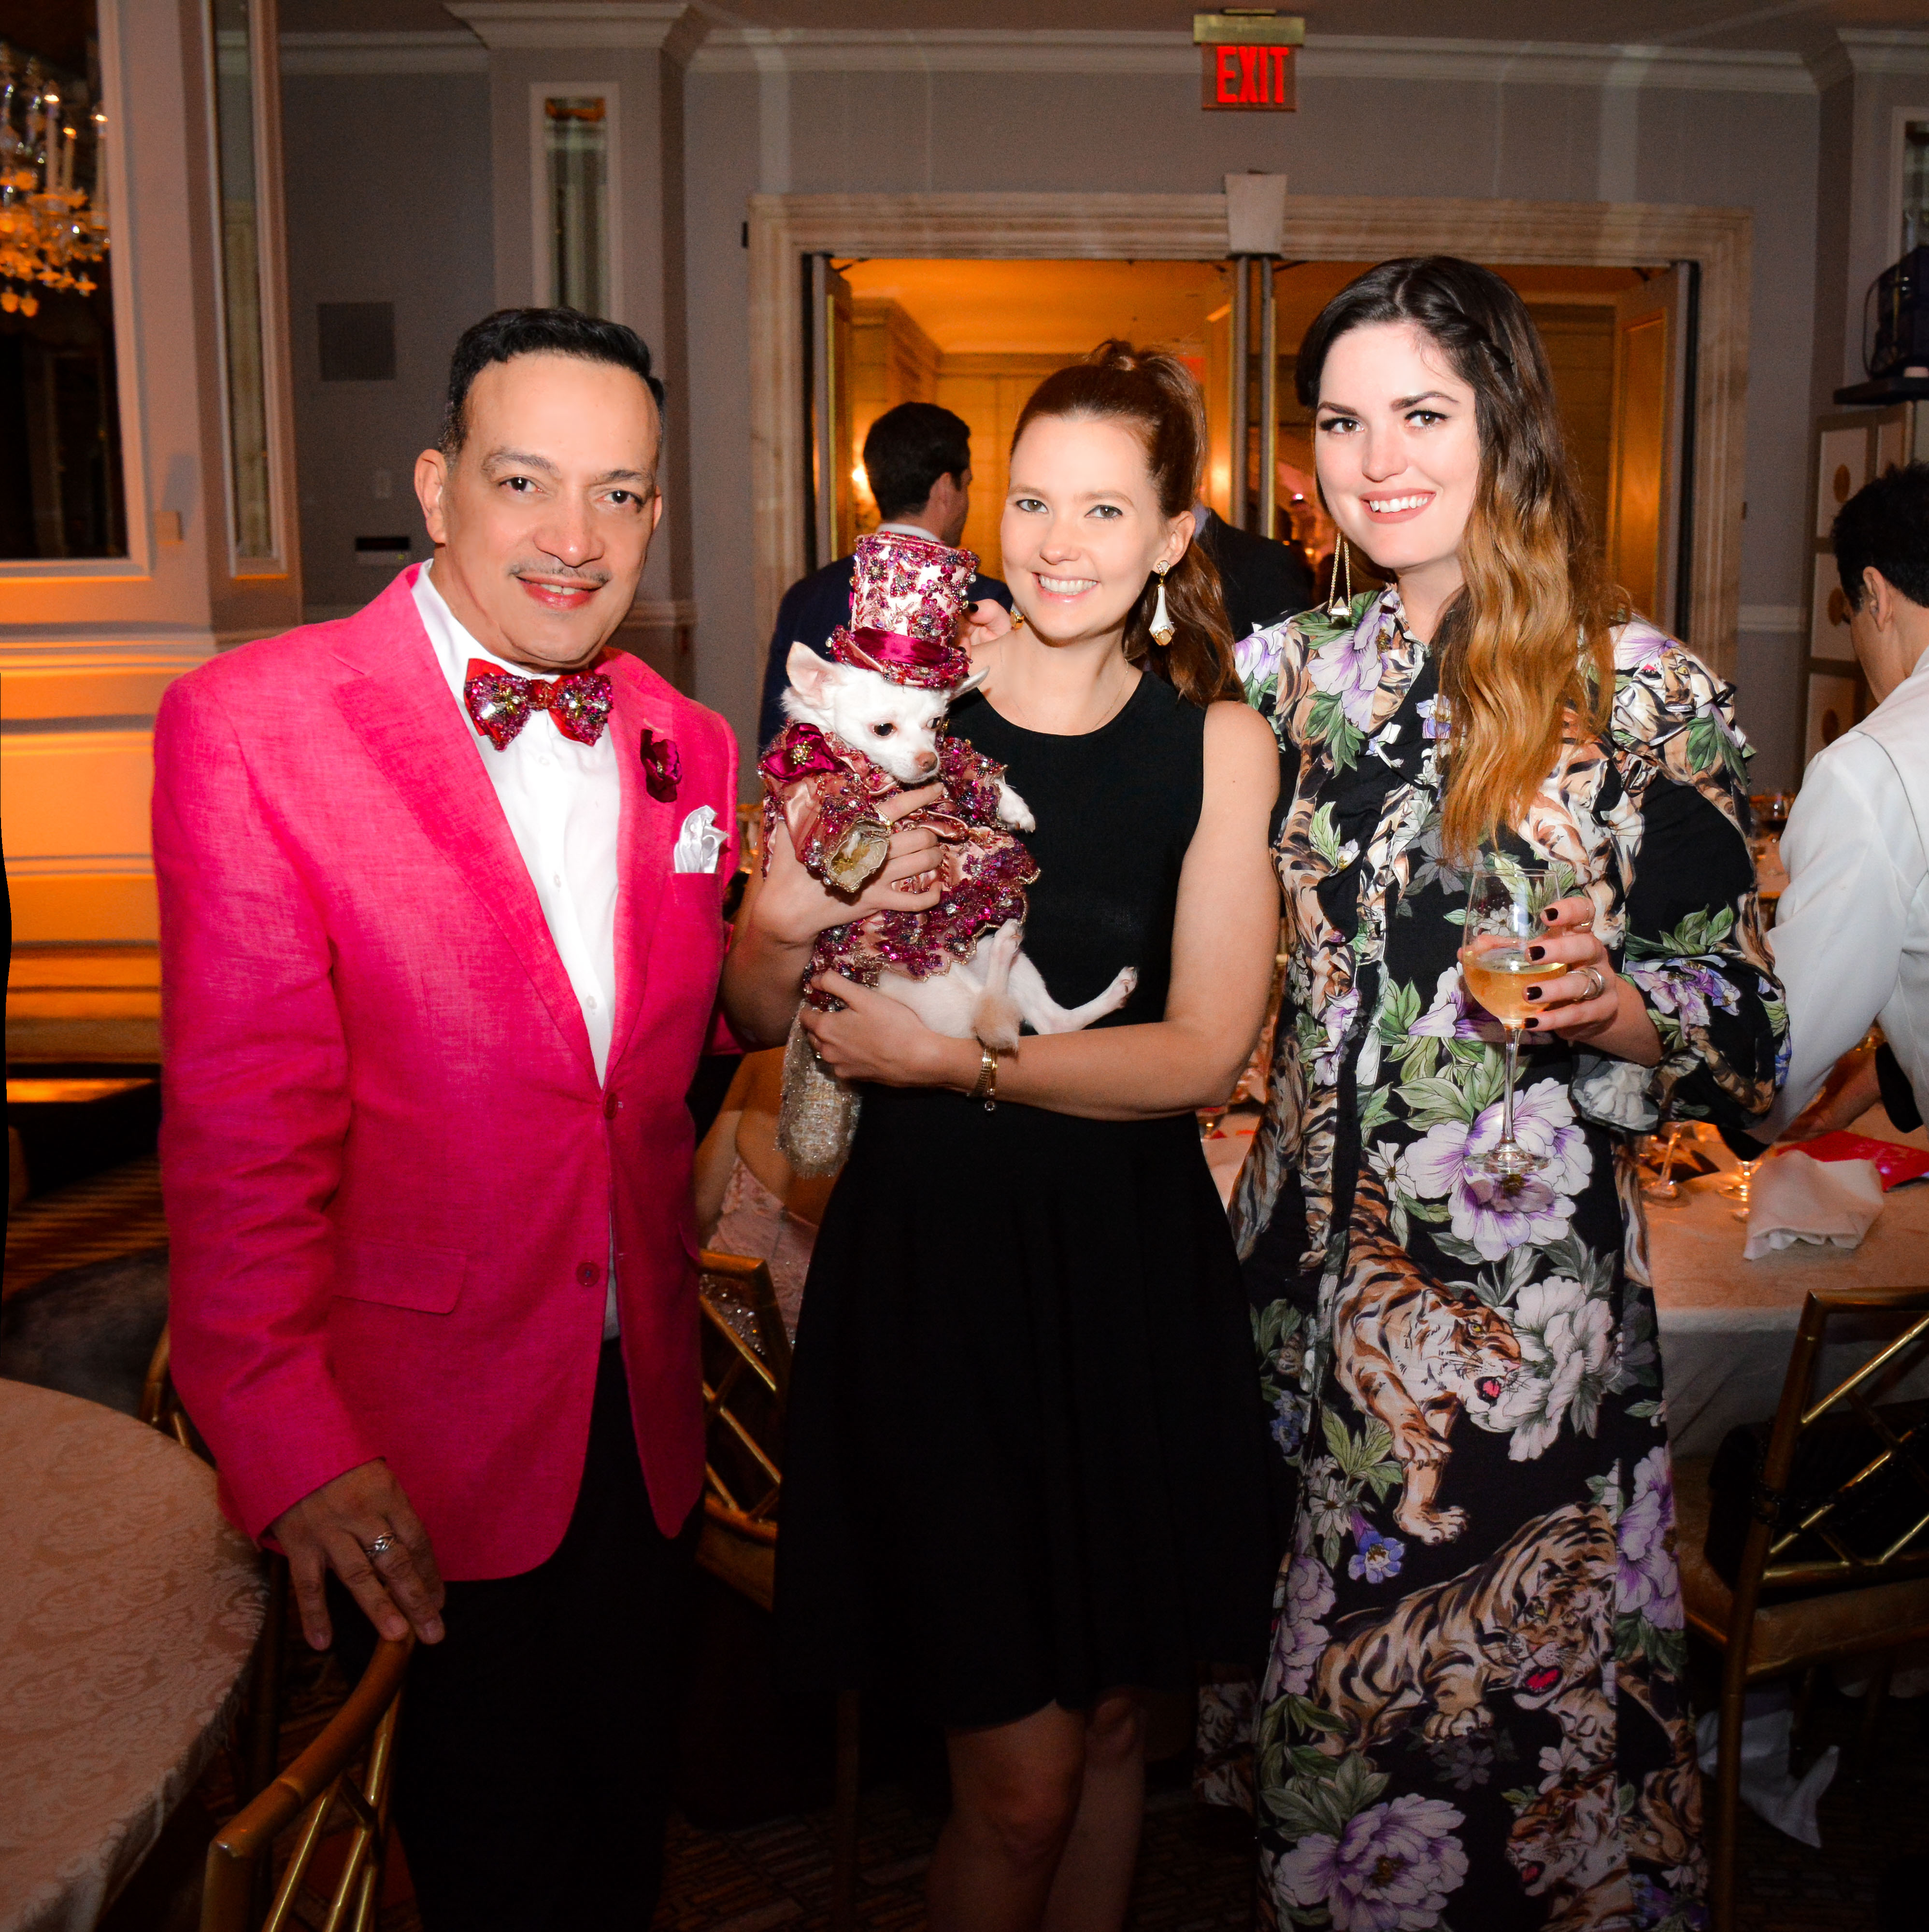 Anthony Rubio attends The 2017 Bideawee Ball held at The Pierre, A Taj Hotel, New York.